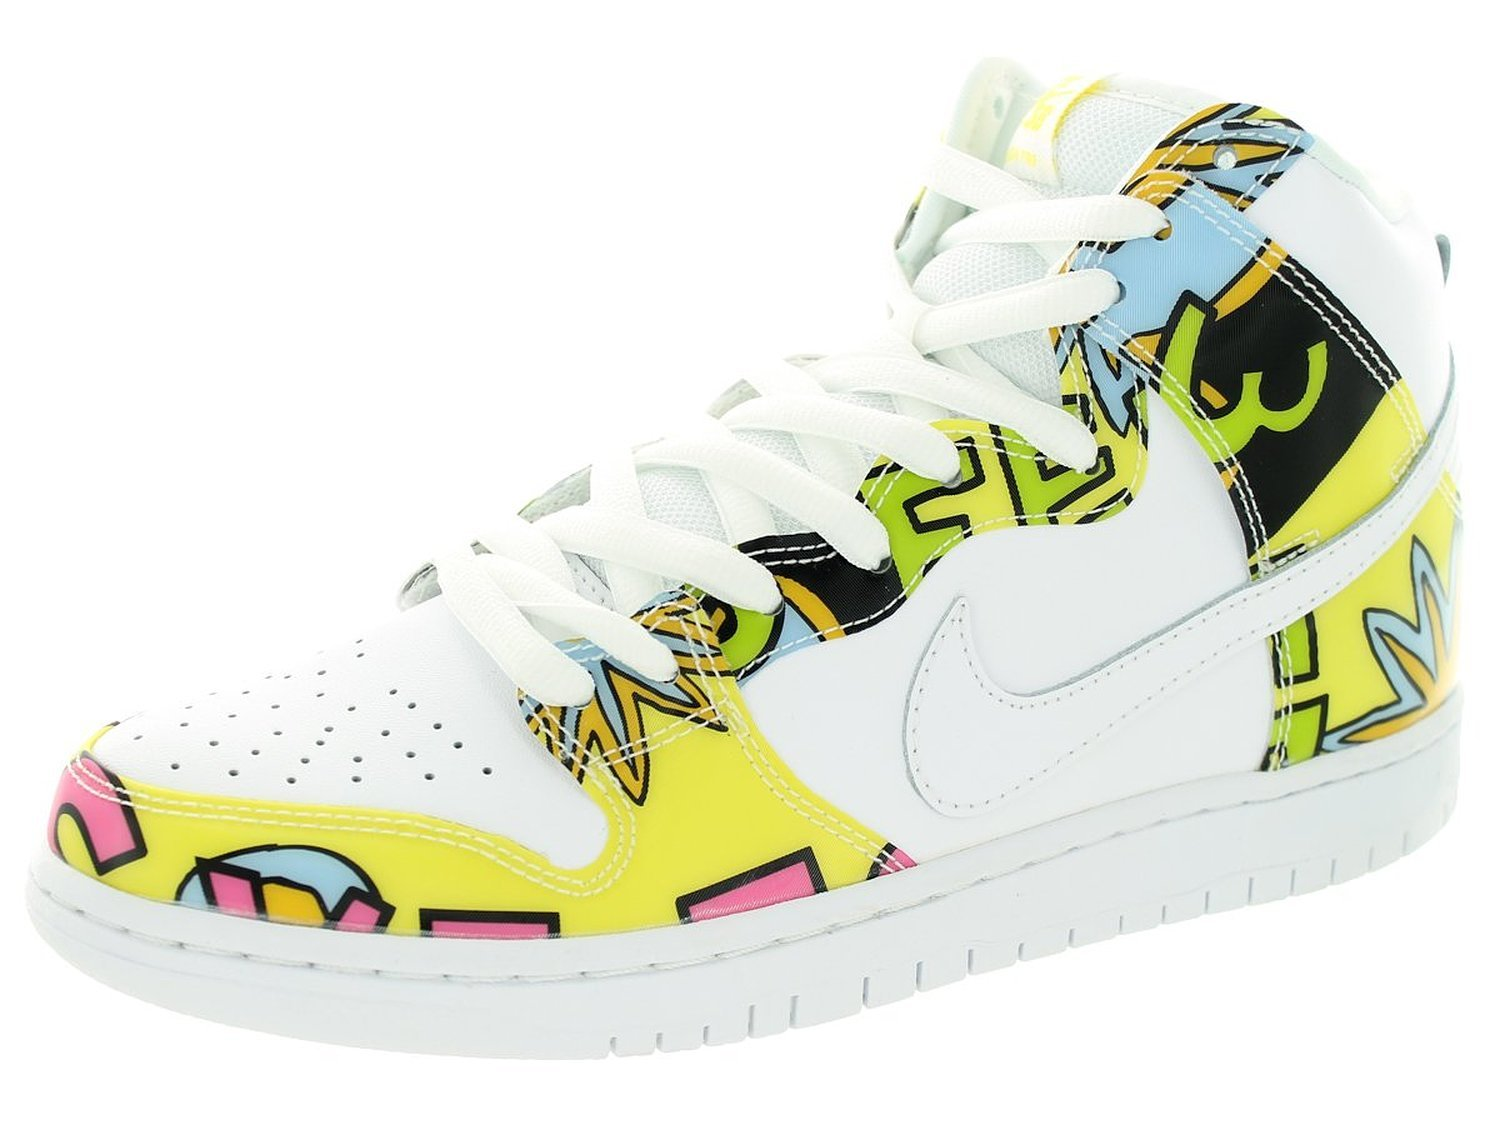 "Nike Mens Dunk High PRM DLS SB QS ""De La Soul"" White/Firefly Leather Skateboarding"